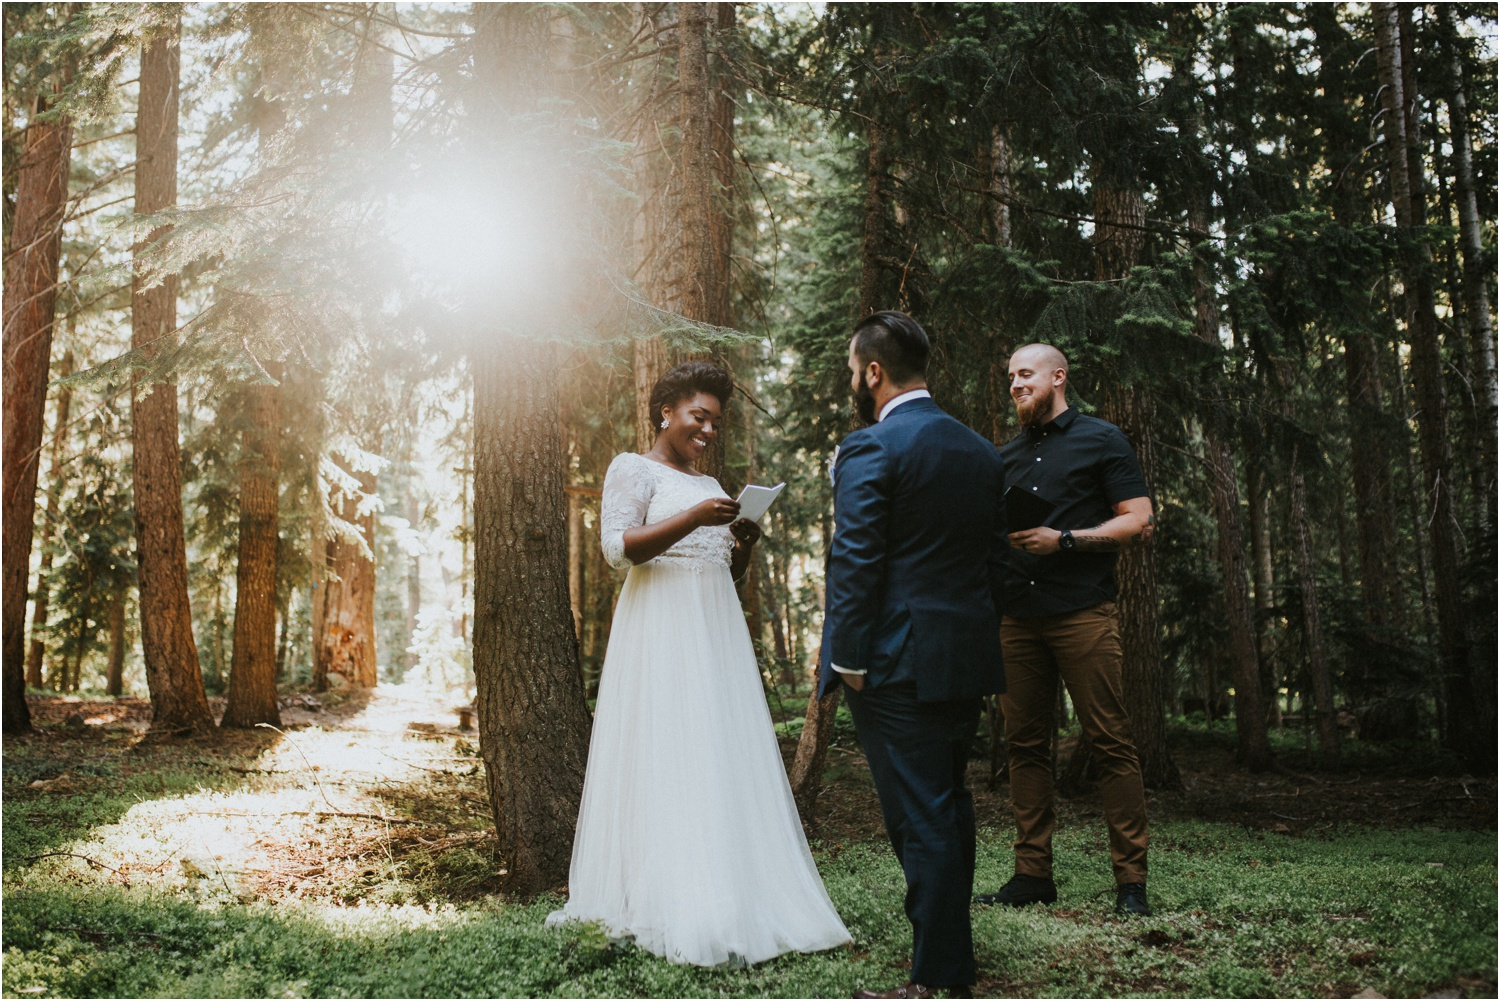 lovestoriesco-amber-phinisee-seattle-mount-rainier-elopement_0049.jpg